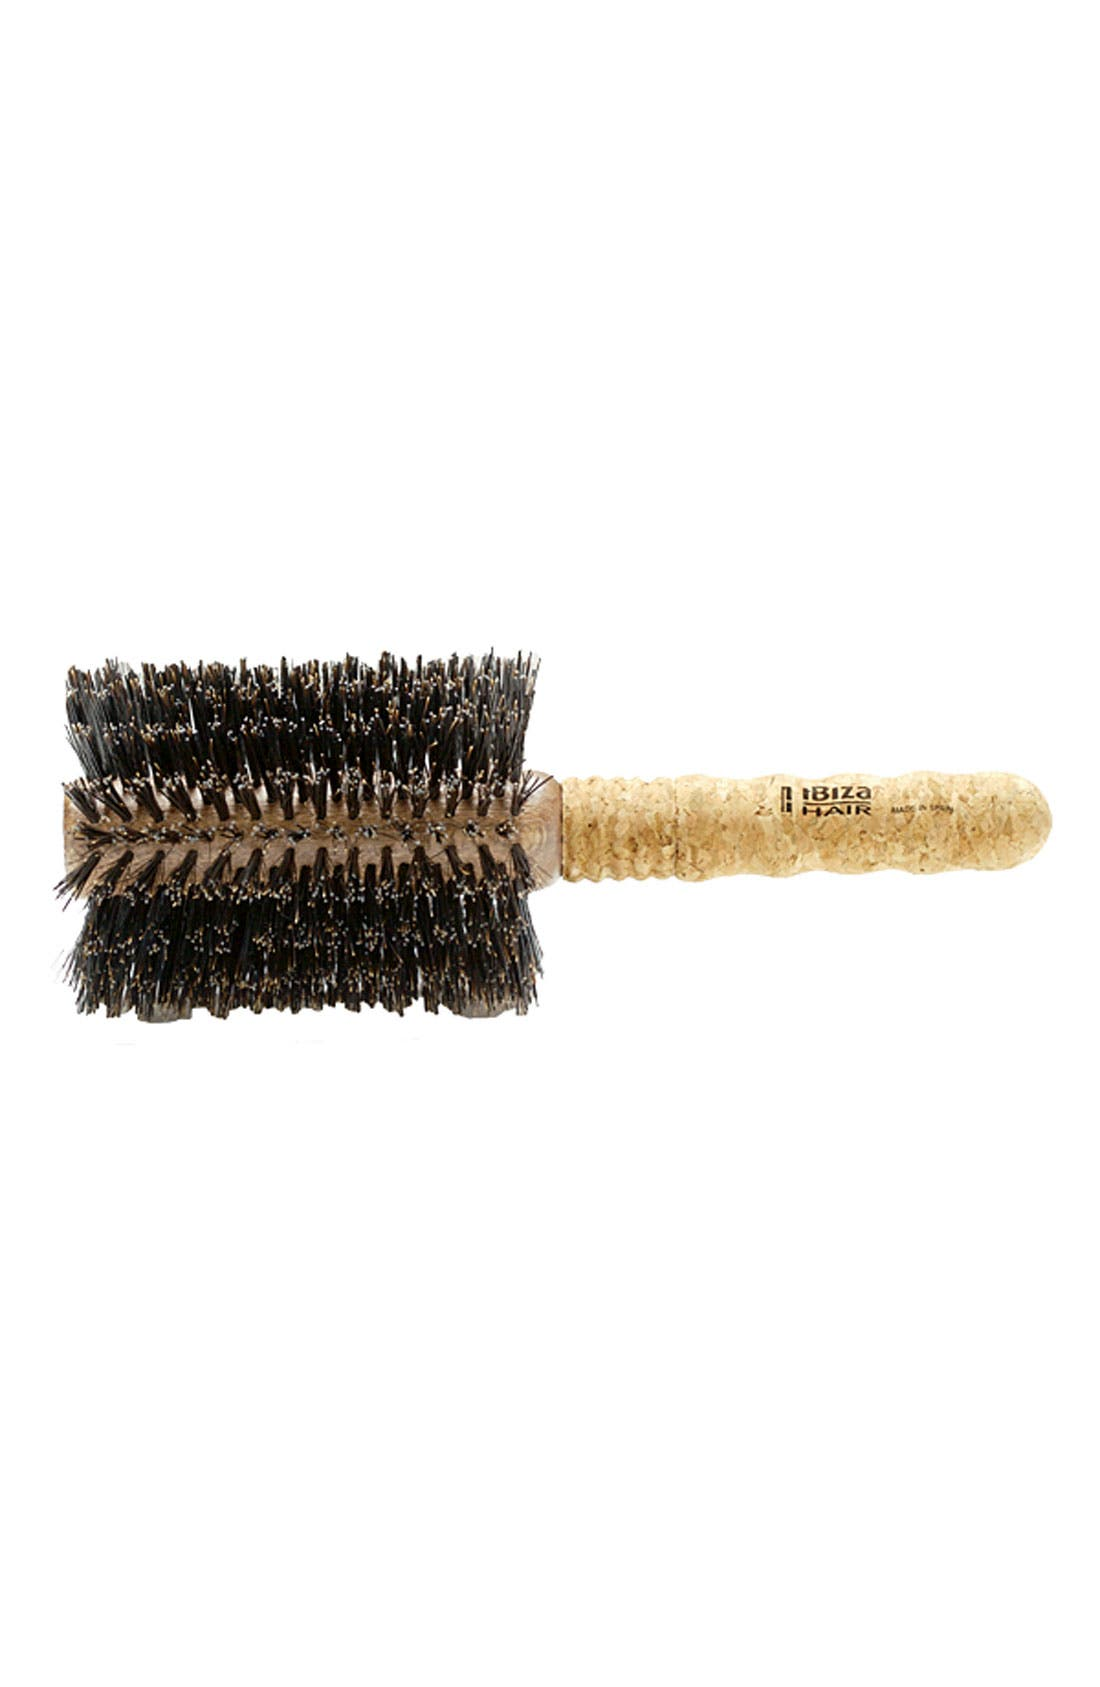 Ibiza Collection Extended Cork Round Brush,                         Main,                         color, NO COLOR